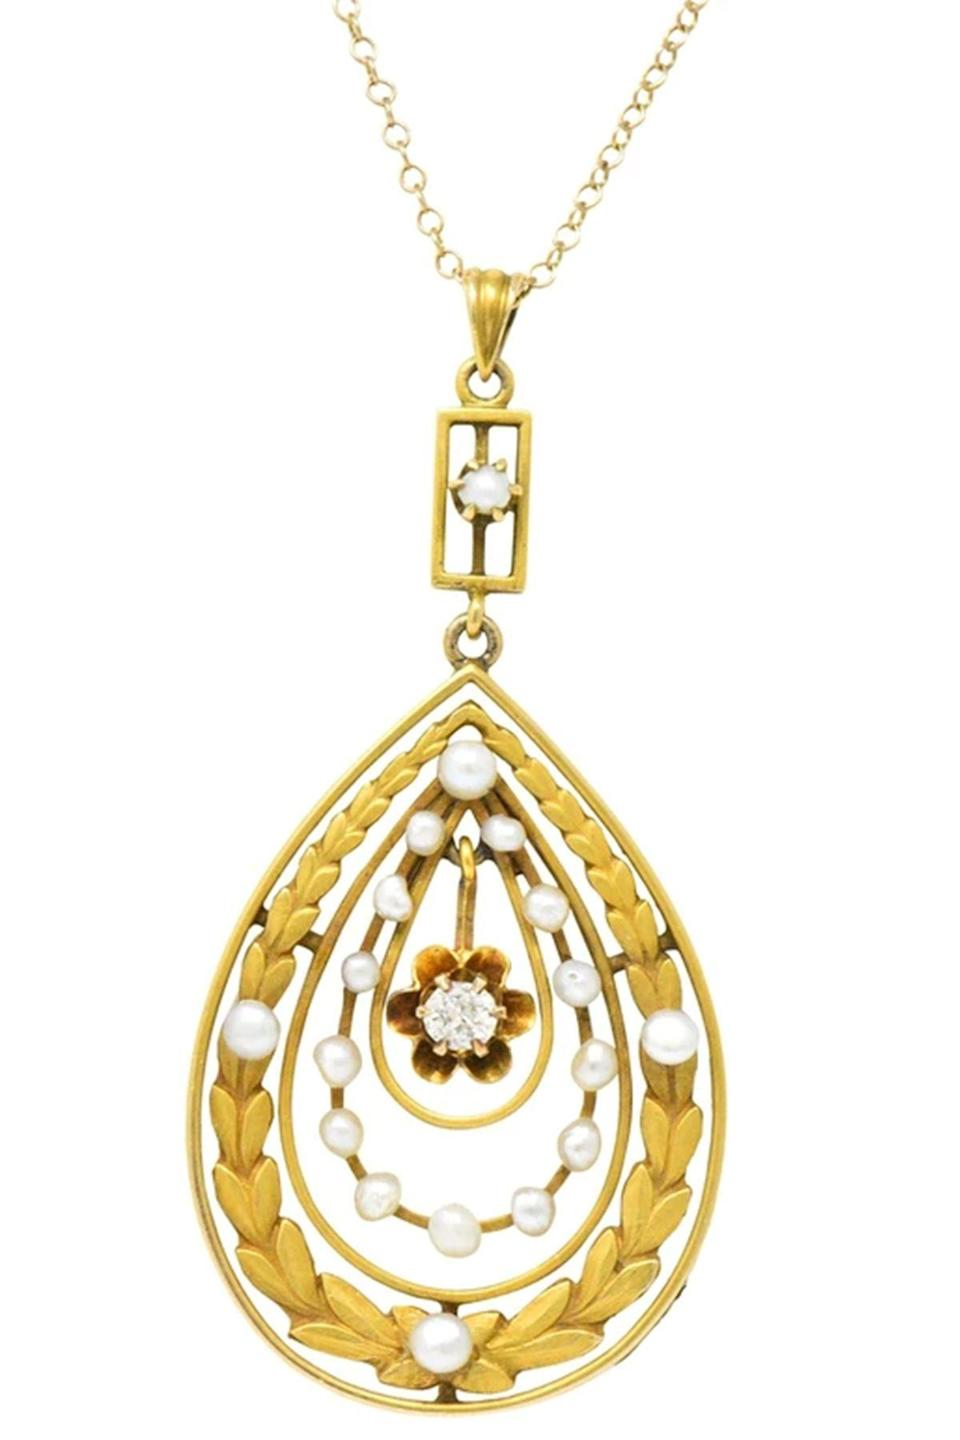 """<p><strong>Wilson's Estate Jewelry</strong></p><p>wilsonsestatejewelry.com</p><p><strong>$900.00</strong></p><p><a href=""""https://www.wilsonsestatejewelry.com/products/art-nouveau-diamond-seed-pearl-14-karat-gold-pendant-necklace-jewellery-locket-fashion?variant=13236531888151¤cy=USD"""" rel=""""nofollow noopener"""" target=""""_blank"""" data-ylk=""""slk:Shop Now"""" class=""""link rapid-noclick-resp"""">Shop Now</a></p><p>Both refined and ornate, the center of this piece is an articulated belcher-set old mine cut diamond in an open drop motif. The gold matte foliate motif with pearl embellishment is the perfect pretty accent to the piece which dates back to 1900. </p>"""